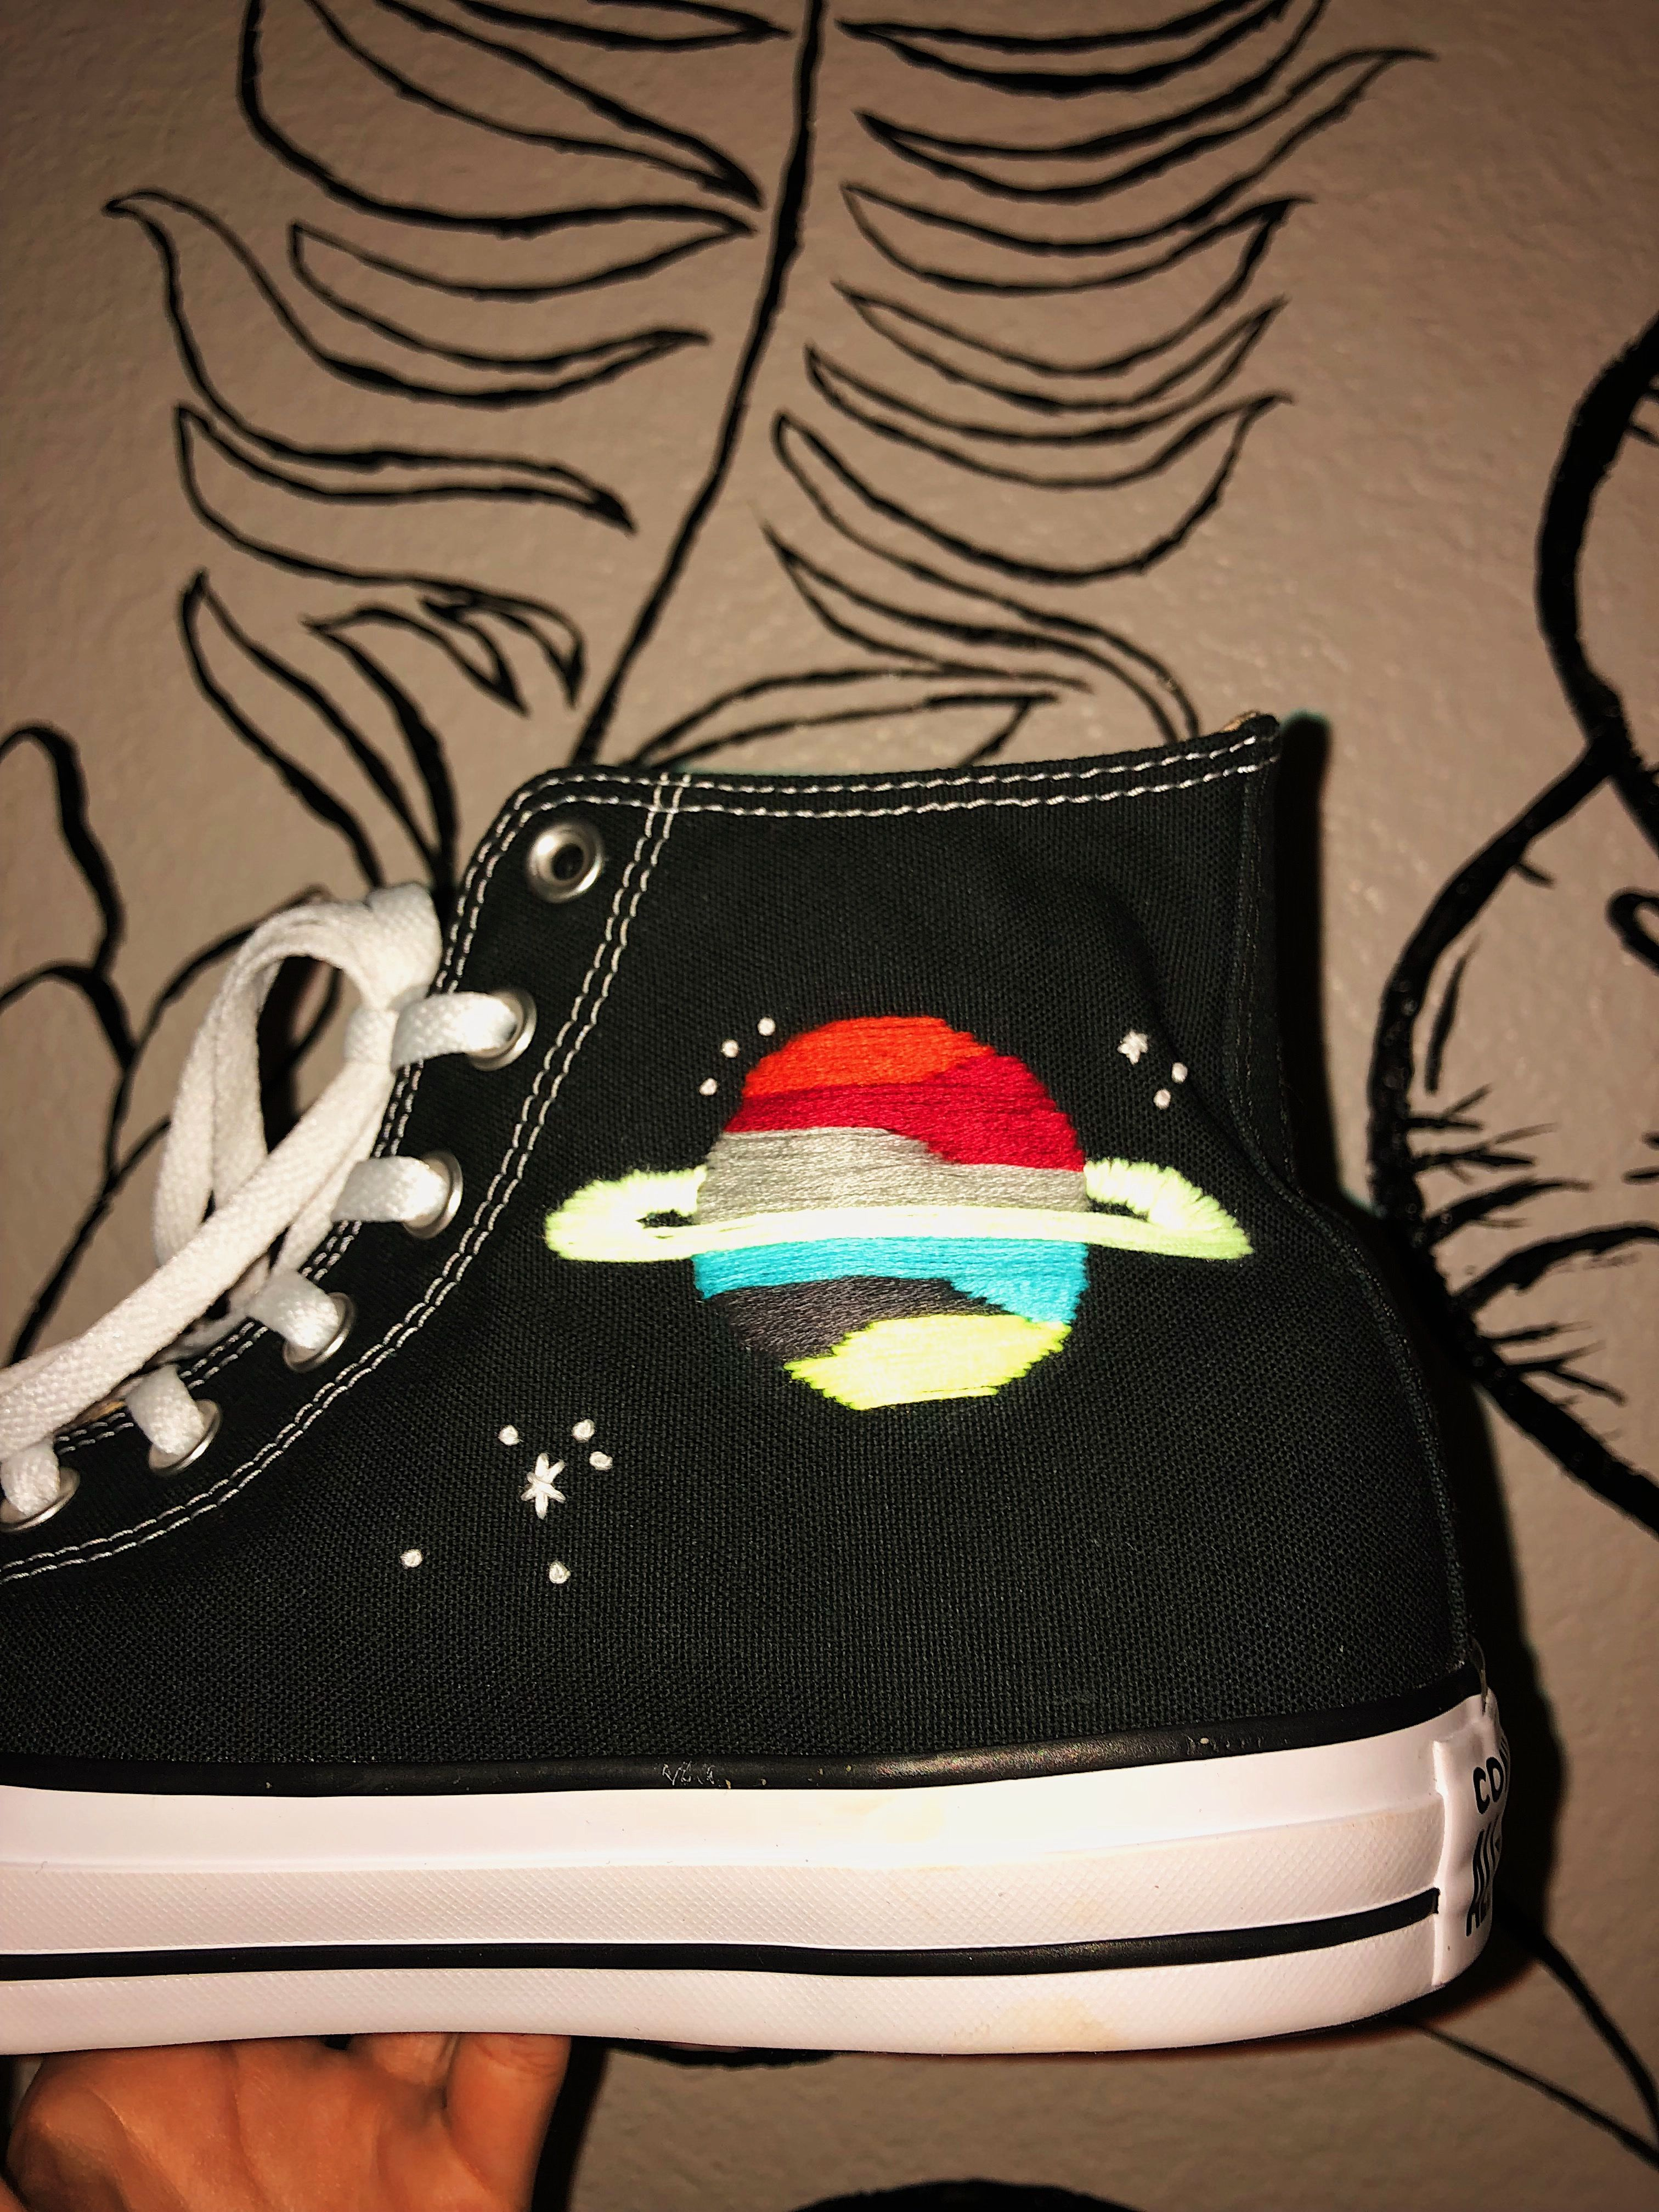 Hand Embroidery Space Converse Shoes Made By Heyoldschoolthreads Embroidery Shoes Embroidery Shoes Diy Embroidered Shoes